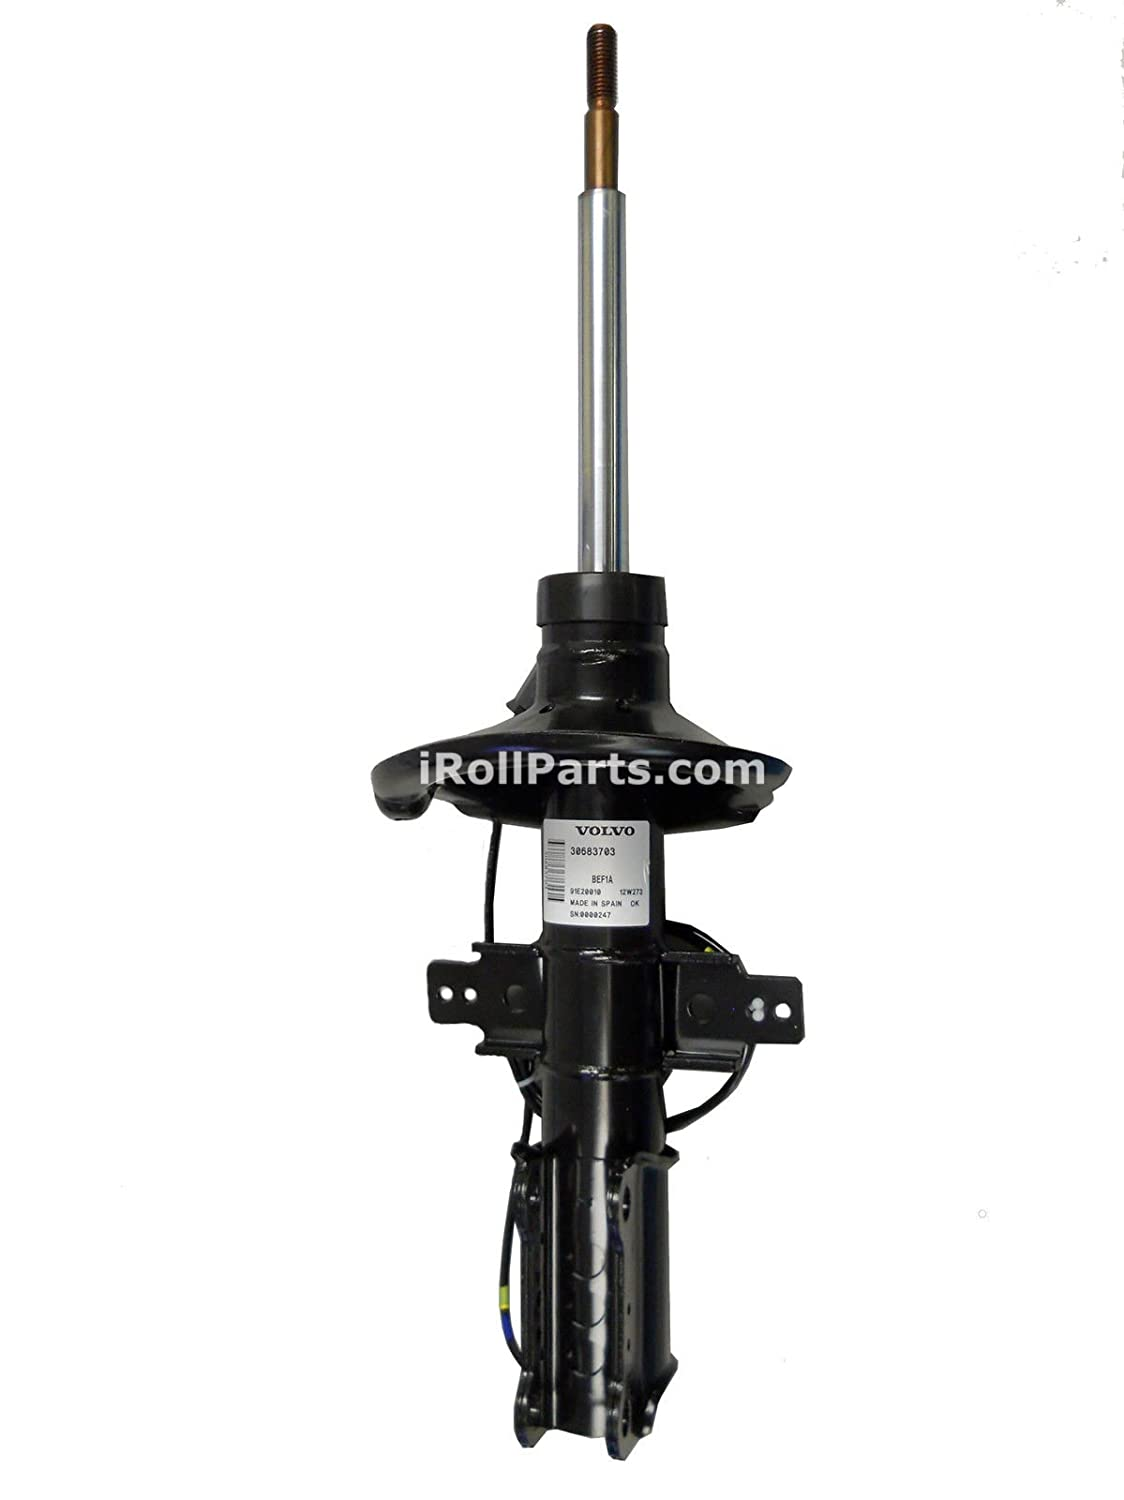 2 GENUINE Left+Right Rear Shock Absorbers Struts Set Pair for Volvo v70 AWD xc70